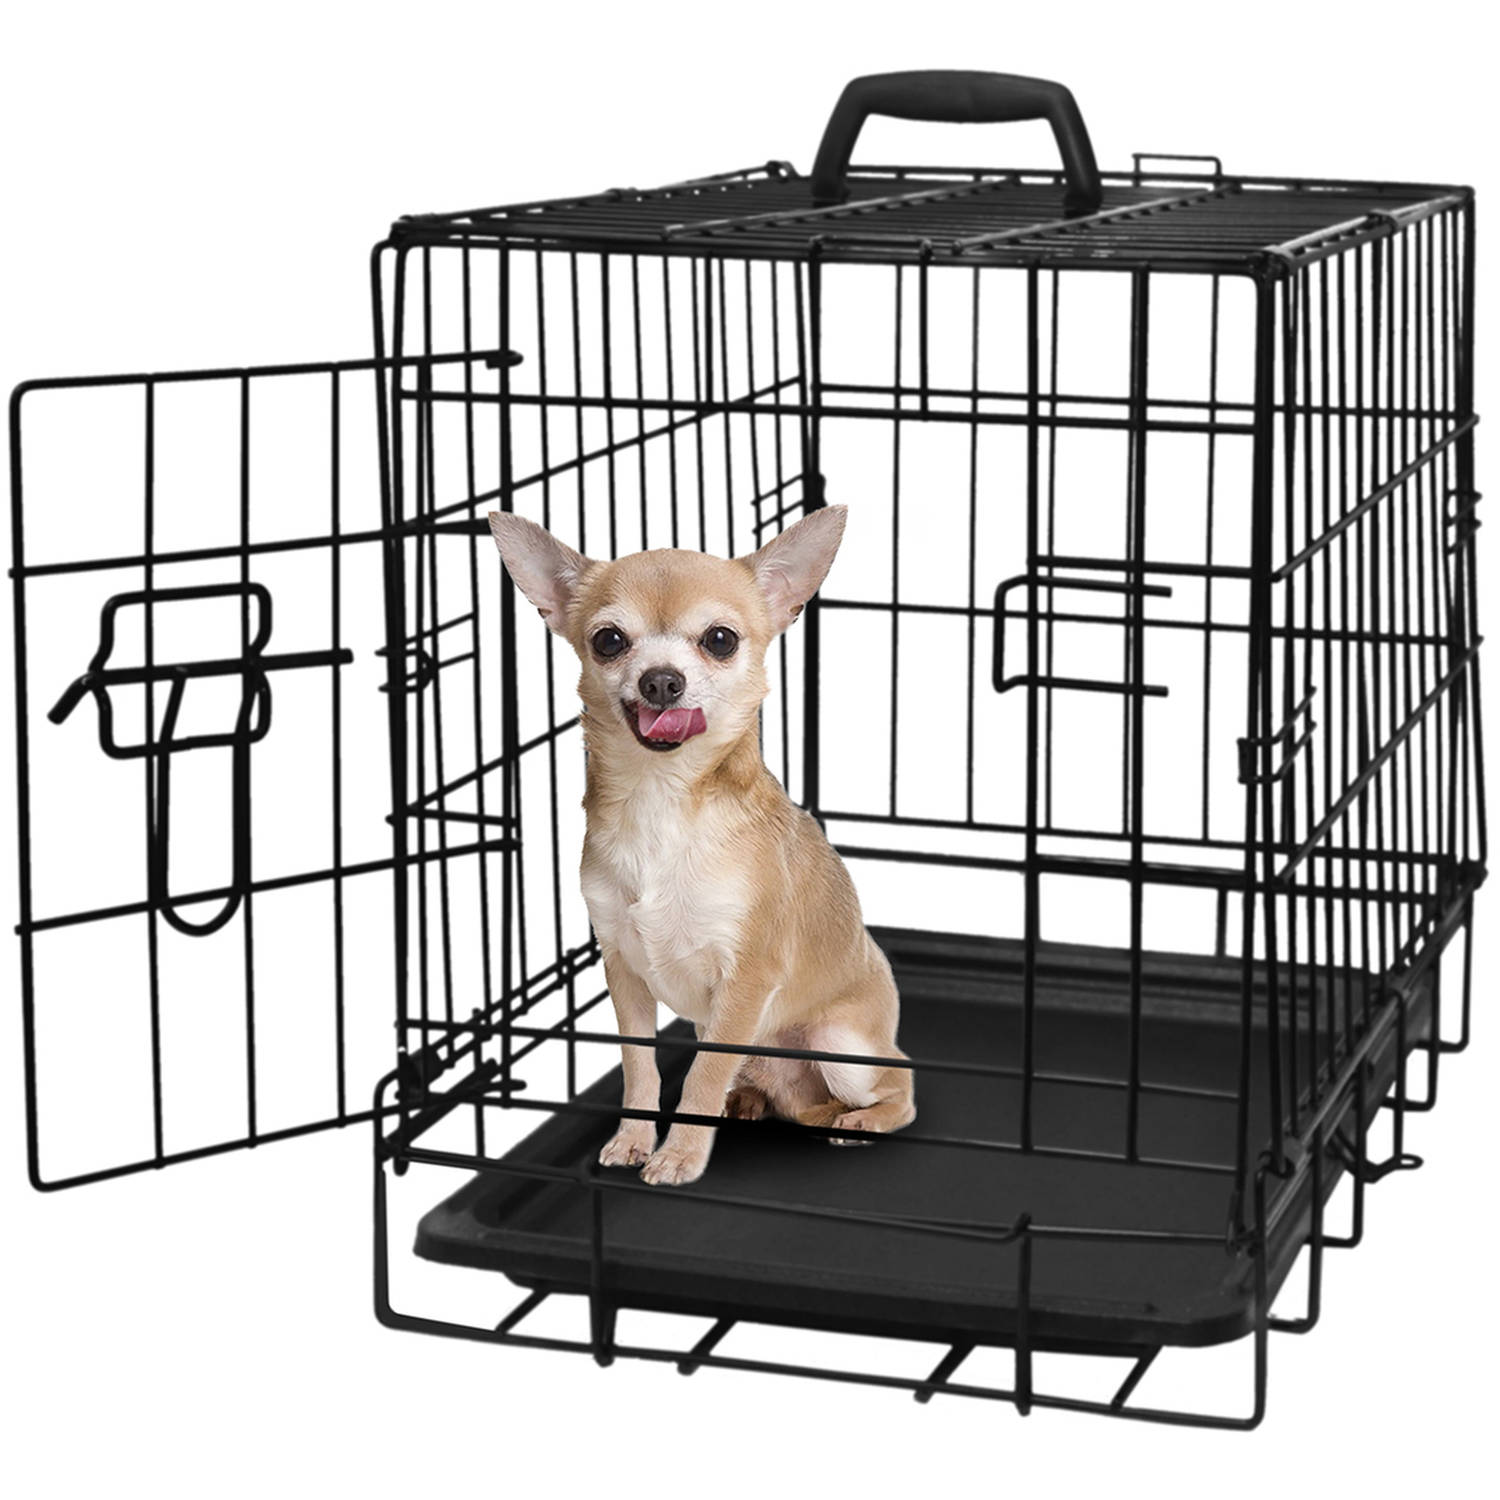 Paws Amp Pals 20 Quot Heavy Duty Foldable Single Door Dog Crate